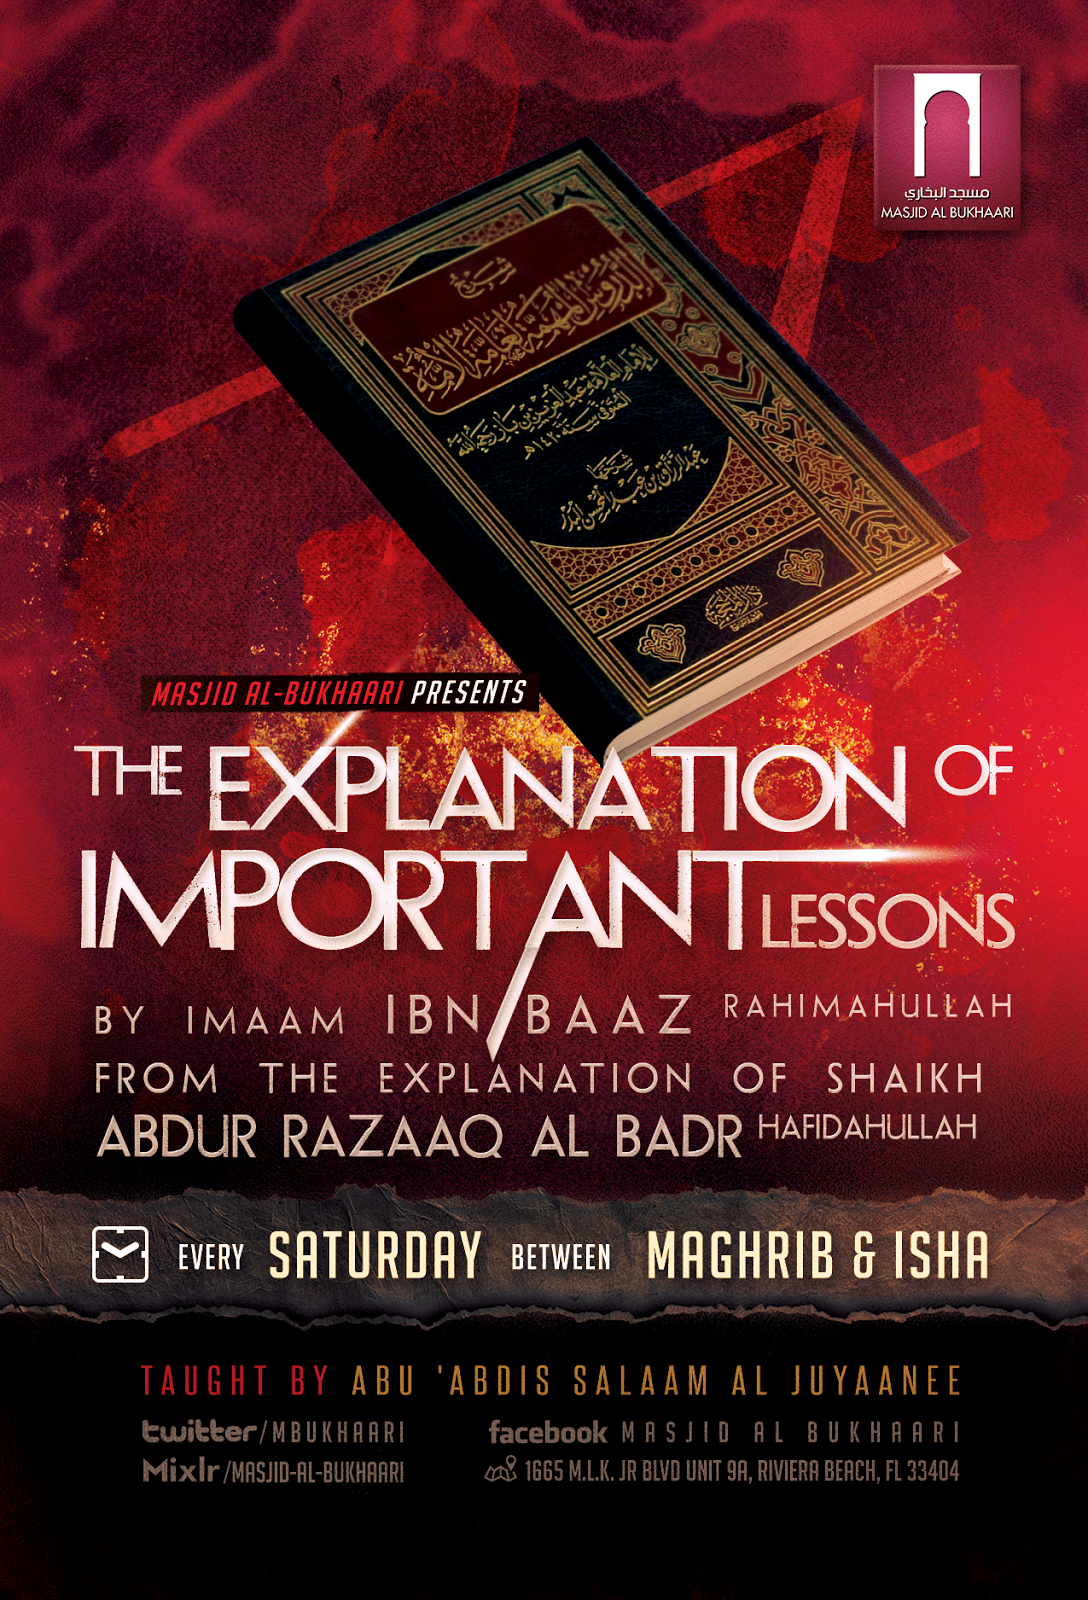 Weekly Class: The Explanation Of Important Lessons